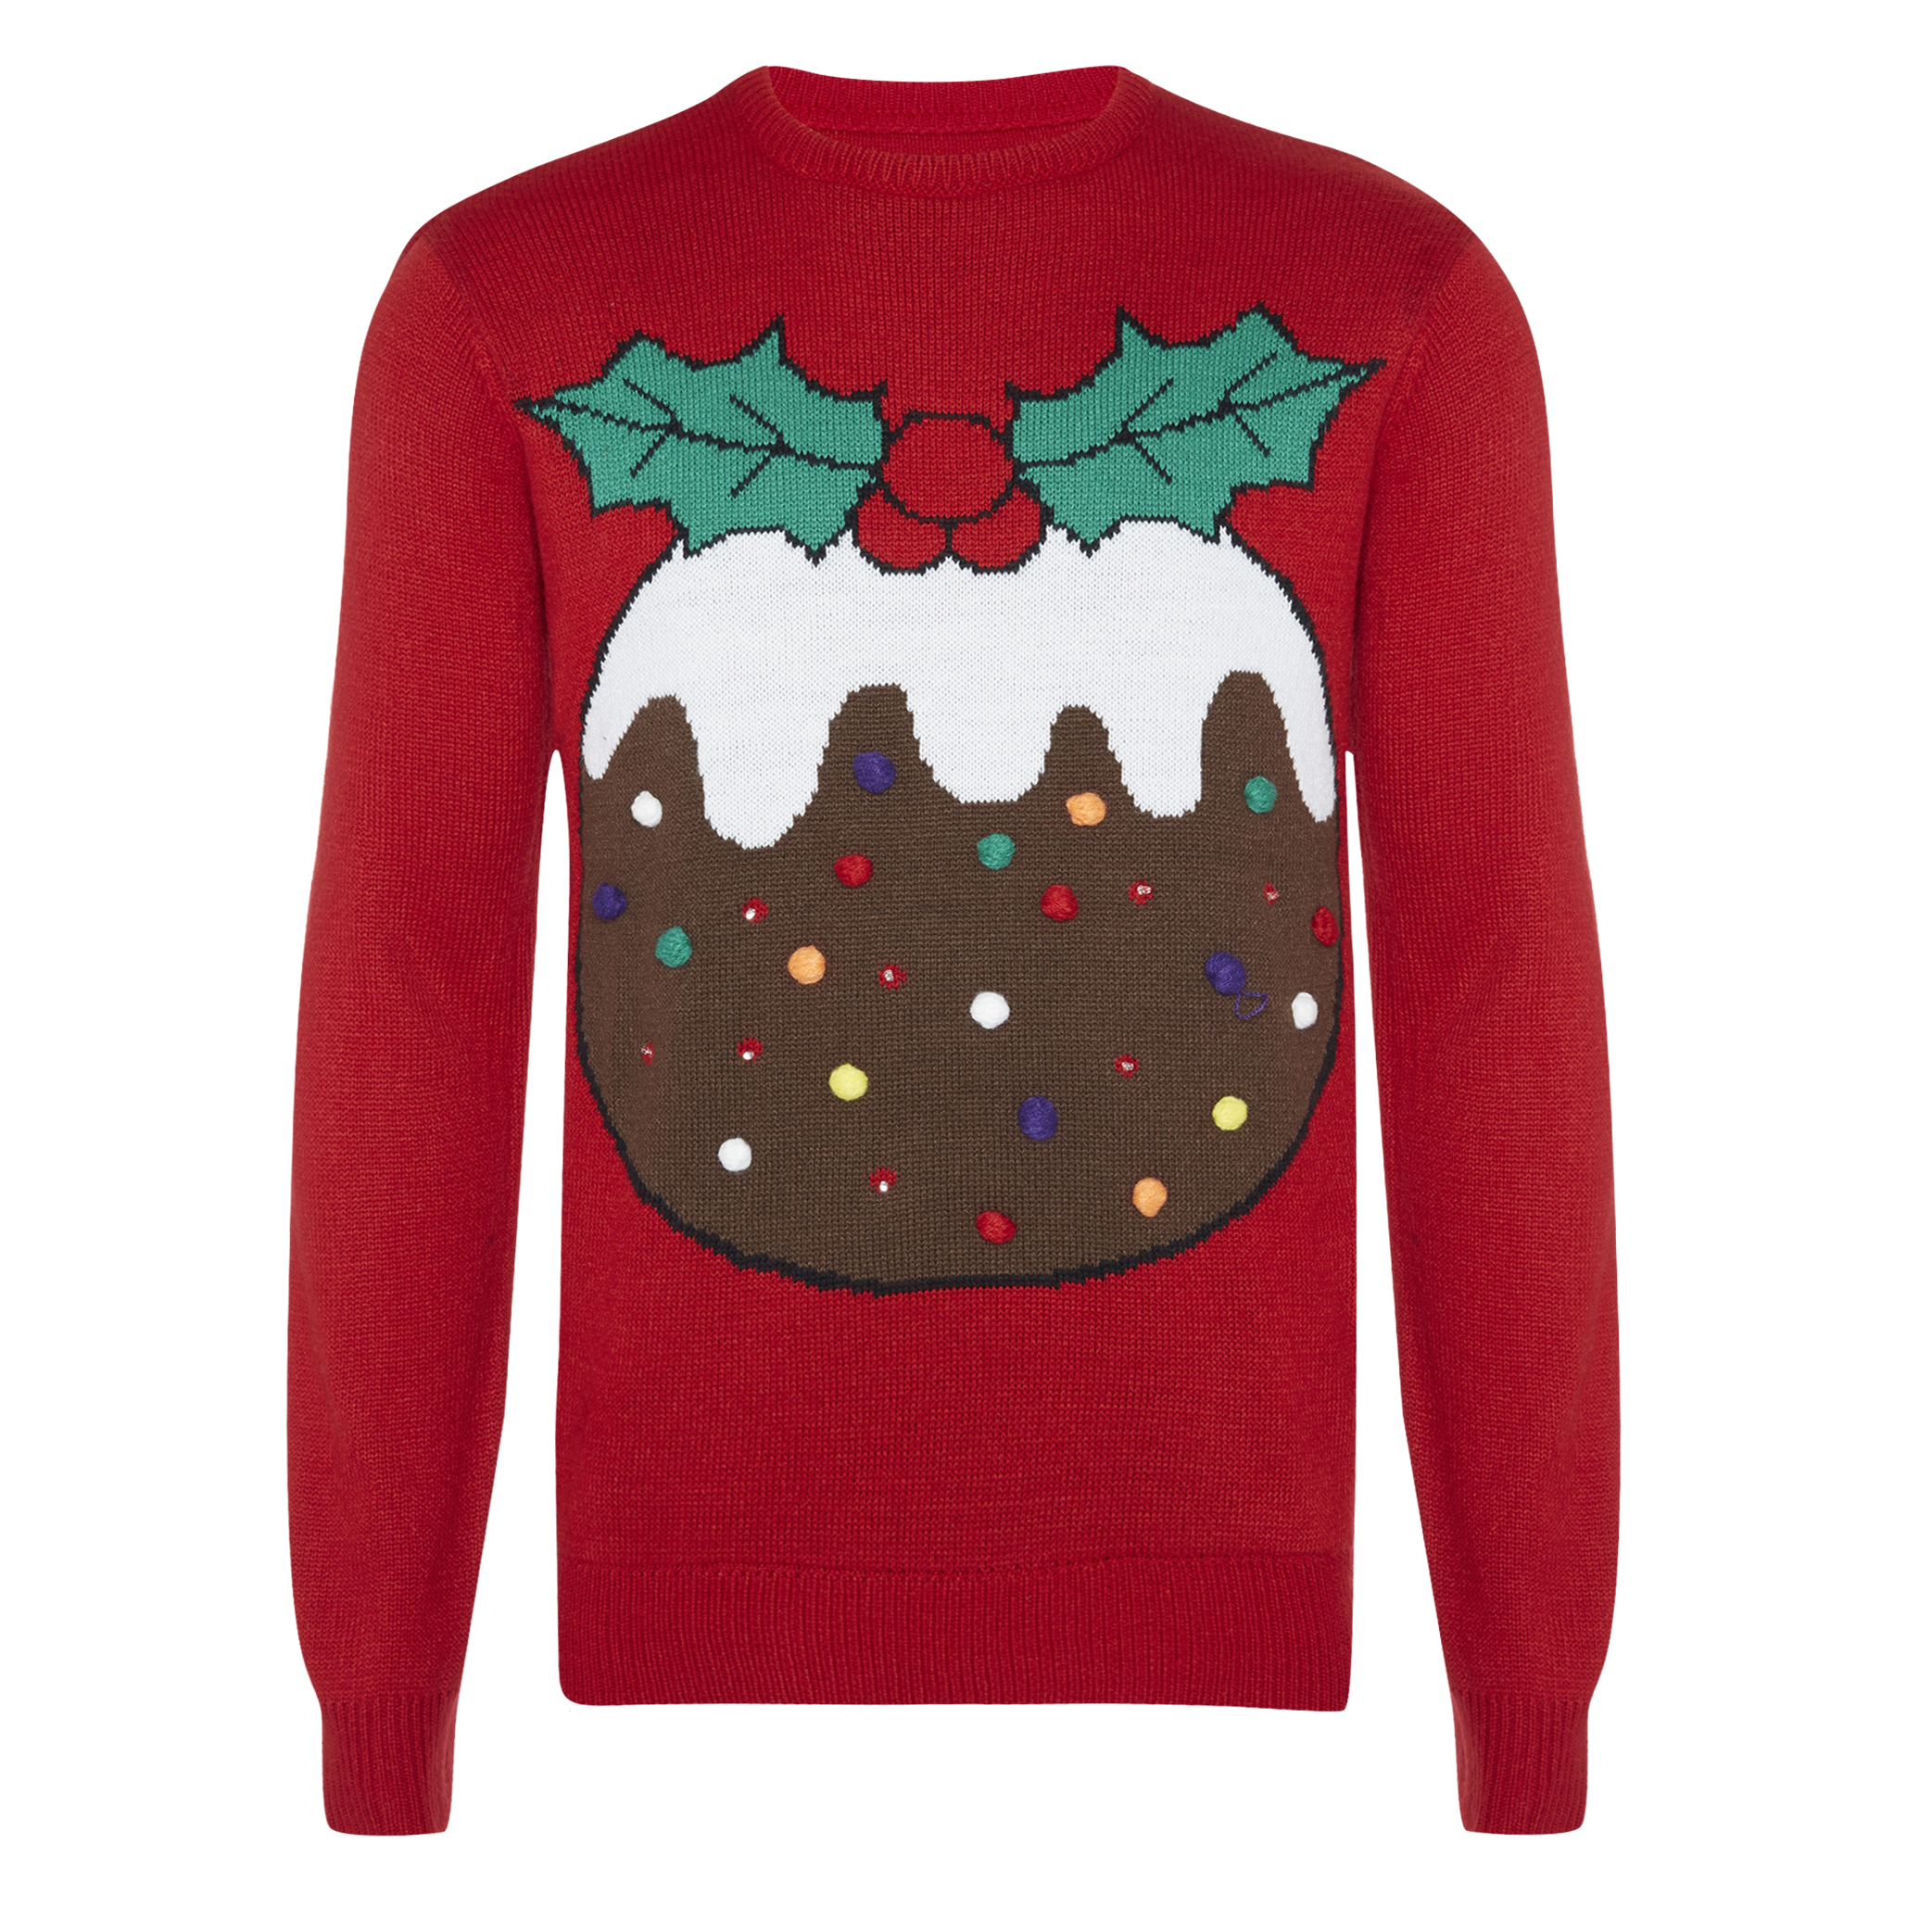 Buy low price, high quality christmas jumpers with worldwide shipping on downiloadojg.gq